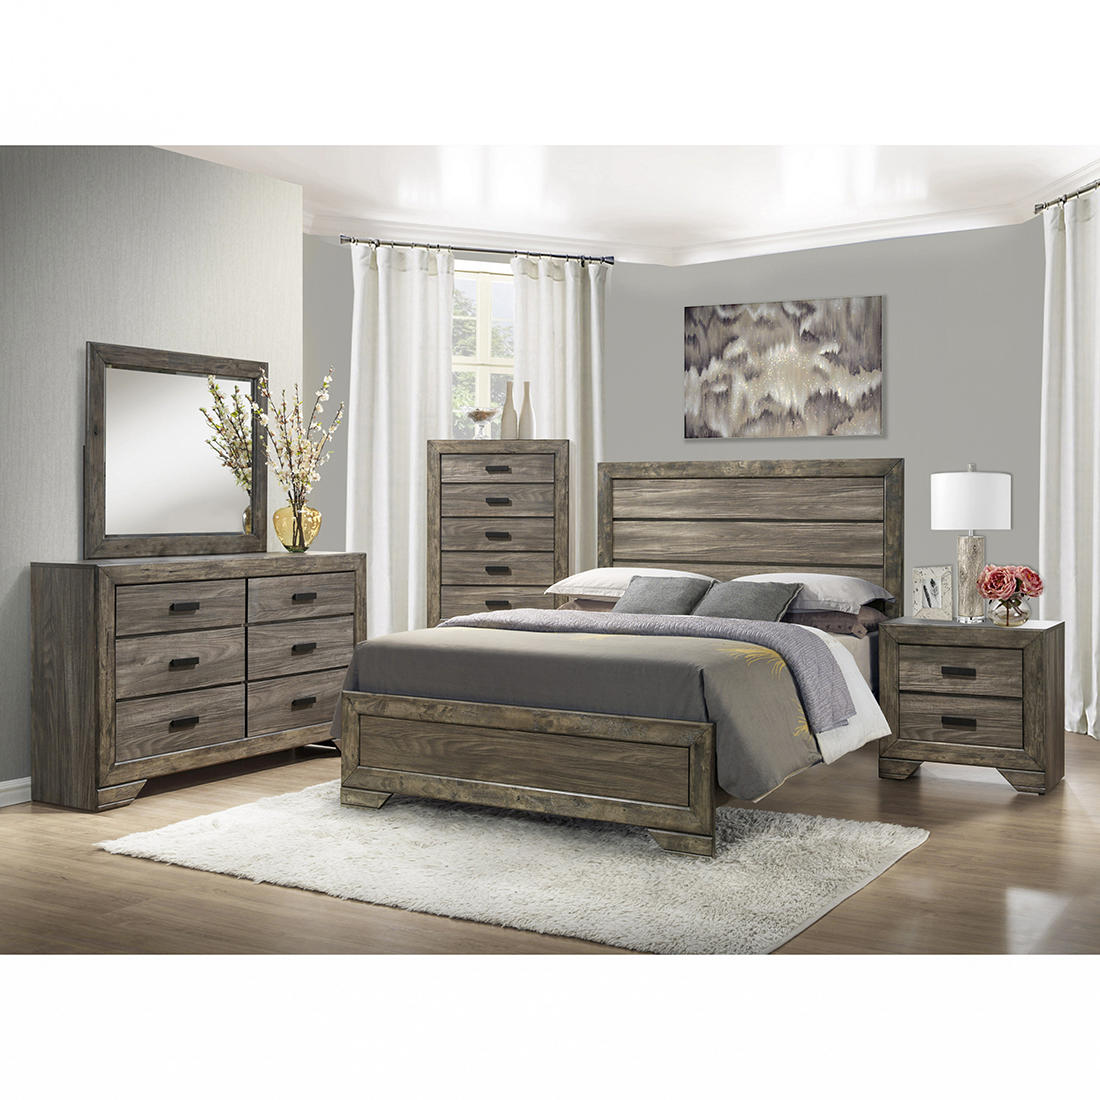 Thompson Nh100qb5pc 5 Pc Queen Size Panel Bedroom Set Gray Oak Bjs Wholesale Club